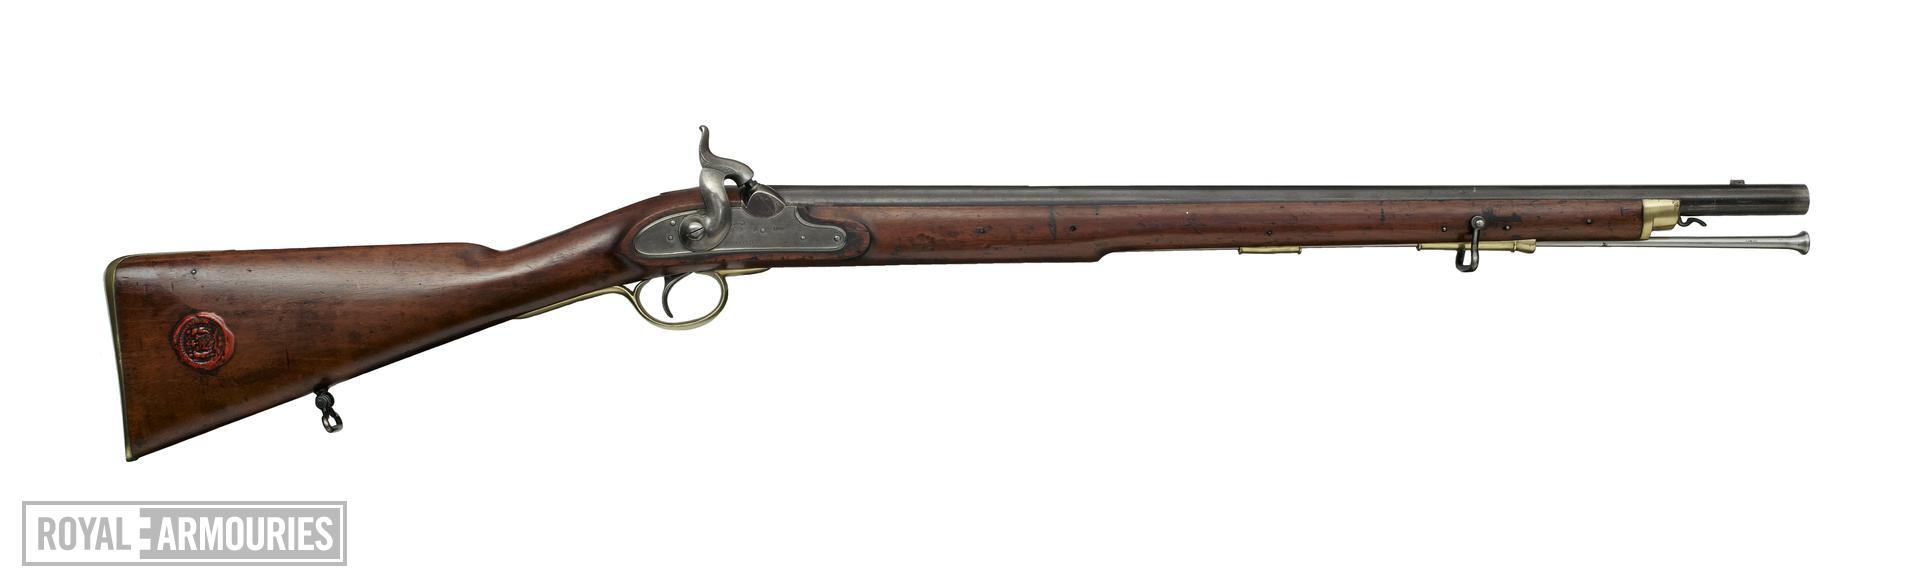 Percussion muzzle-loading military carbine - Pattern 1840 for Constabulary, sealed pattern